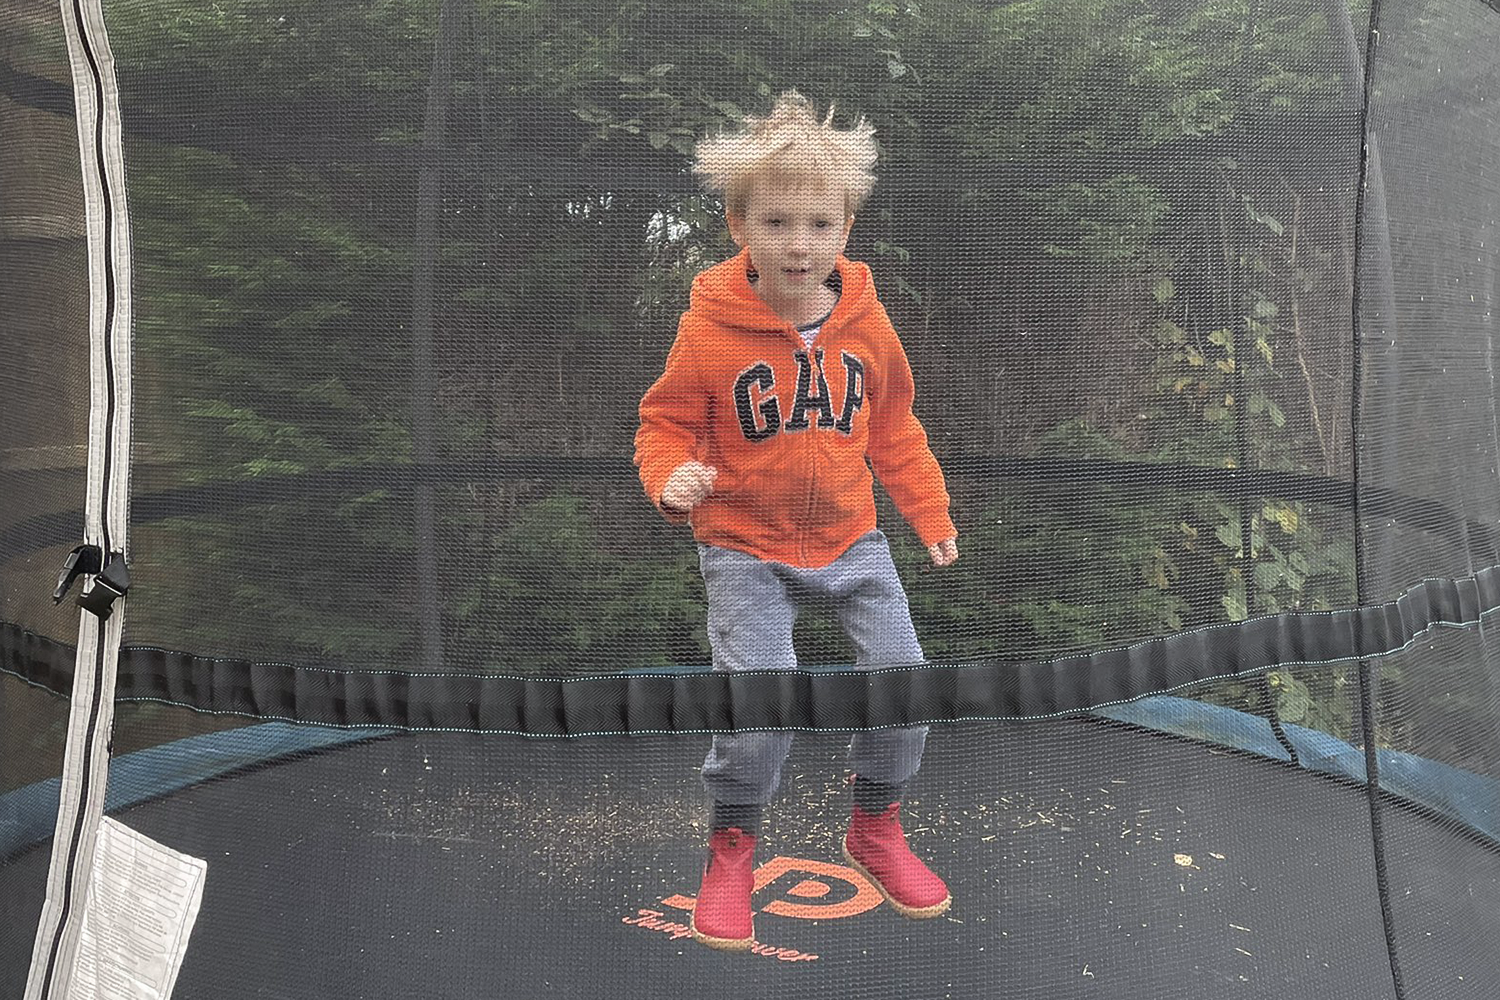 Gabe bouncing on the trampoline